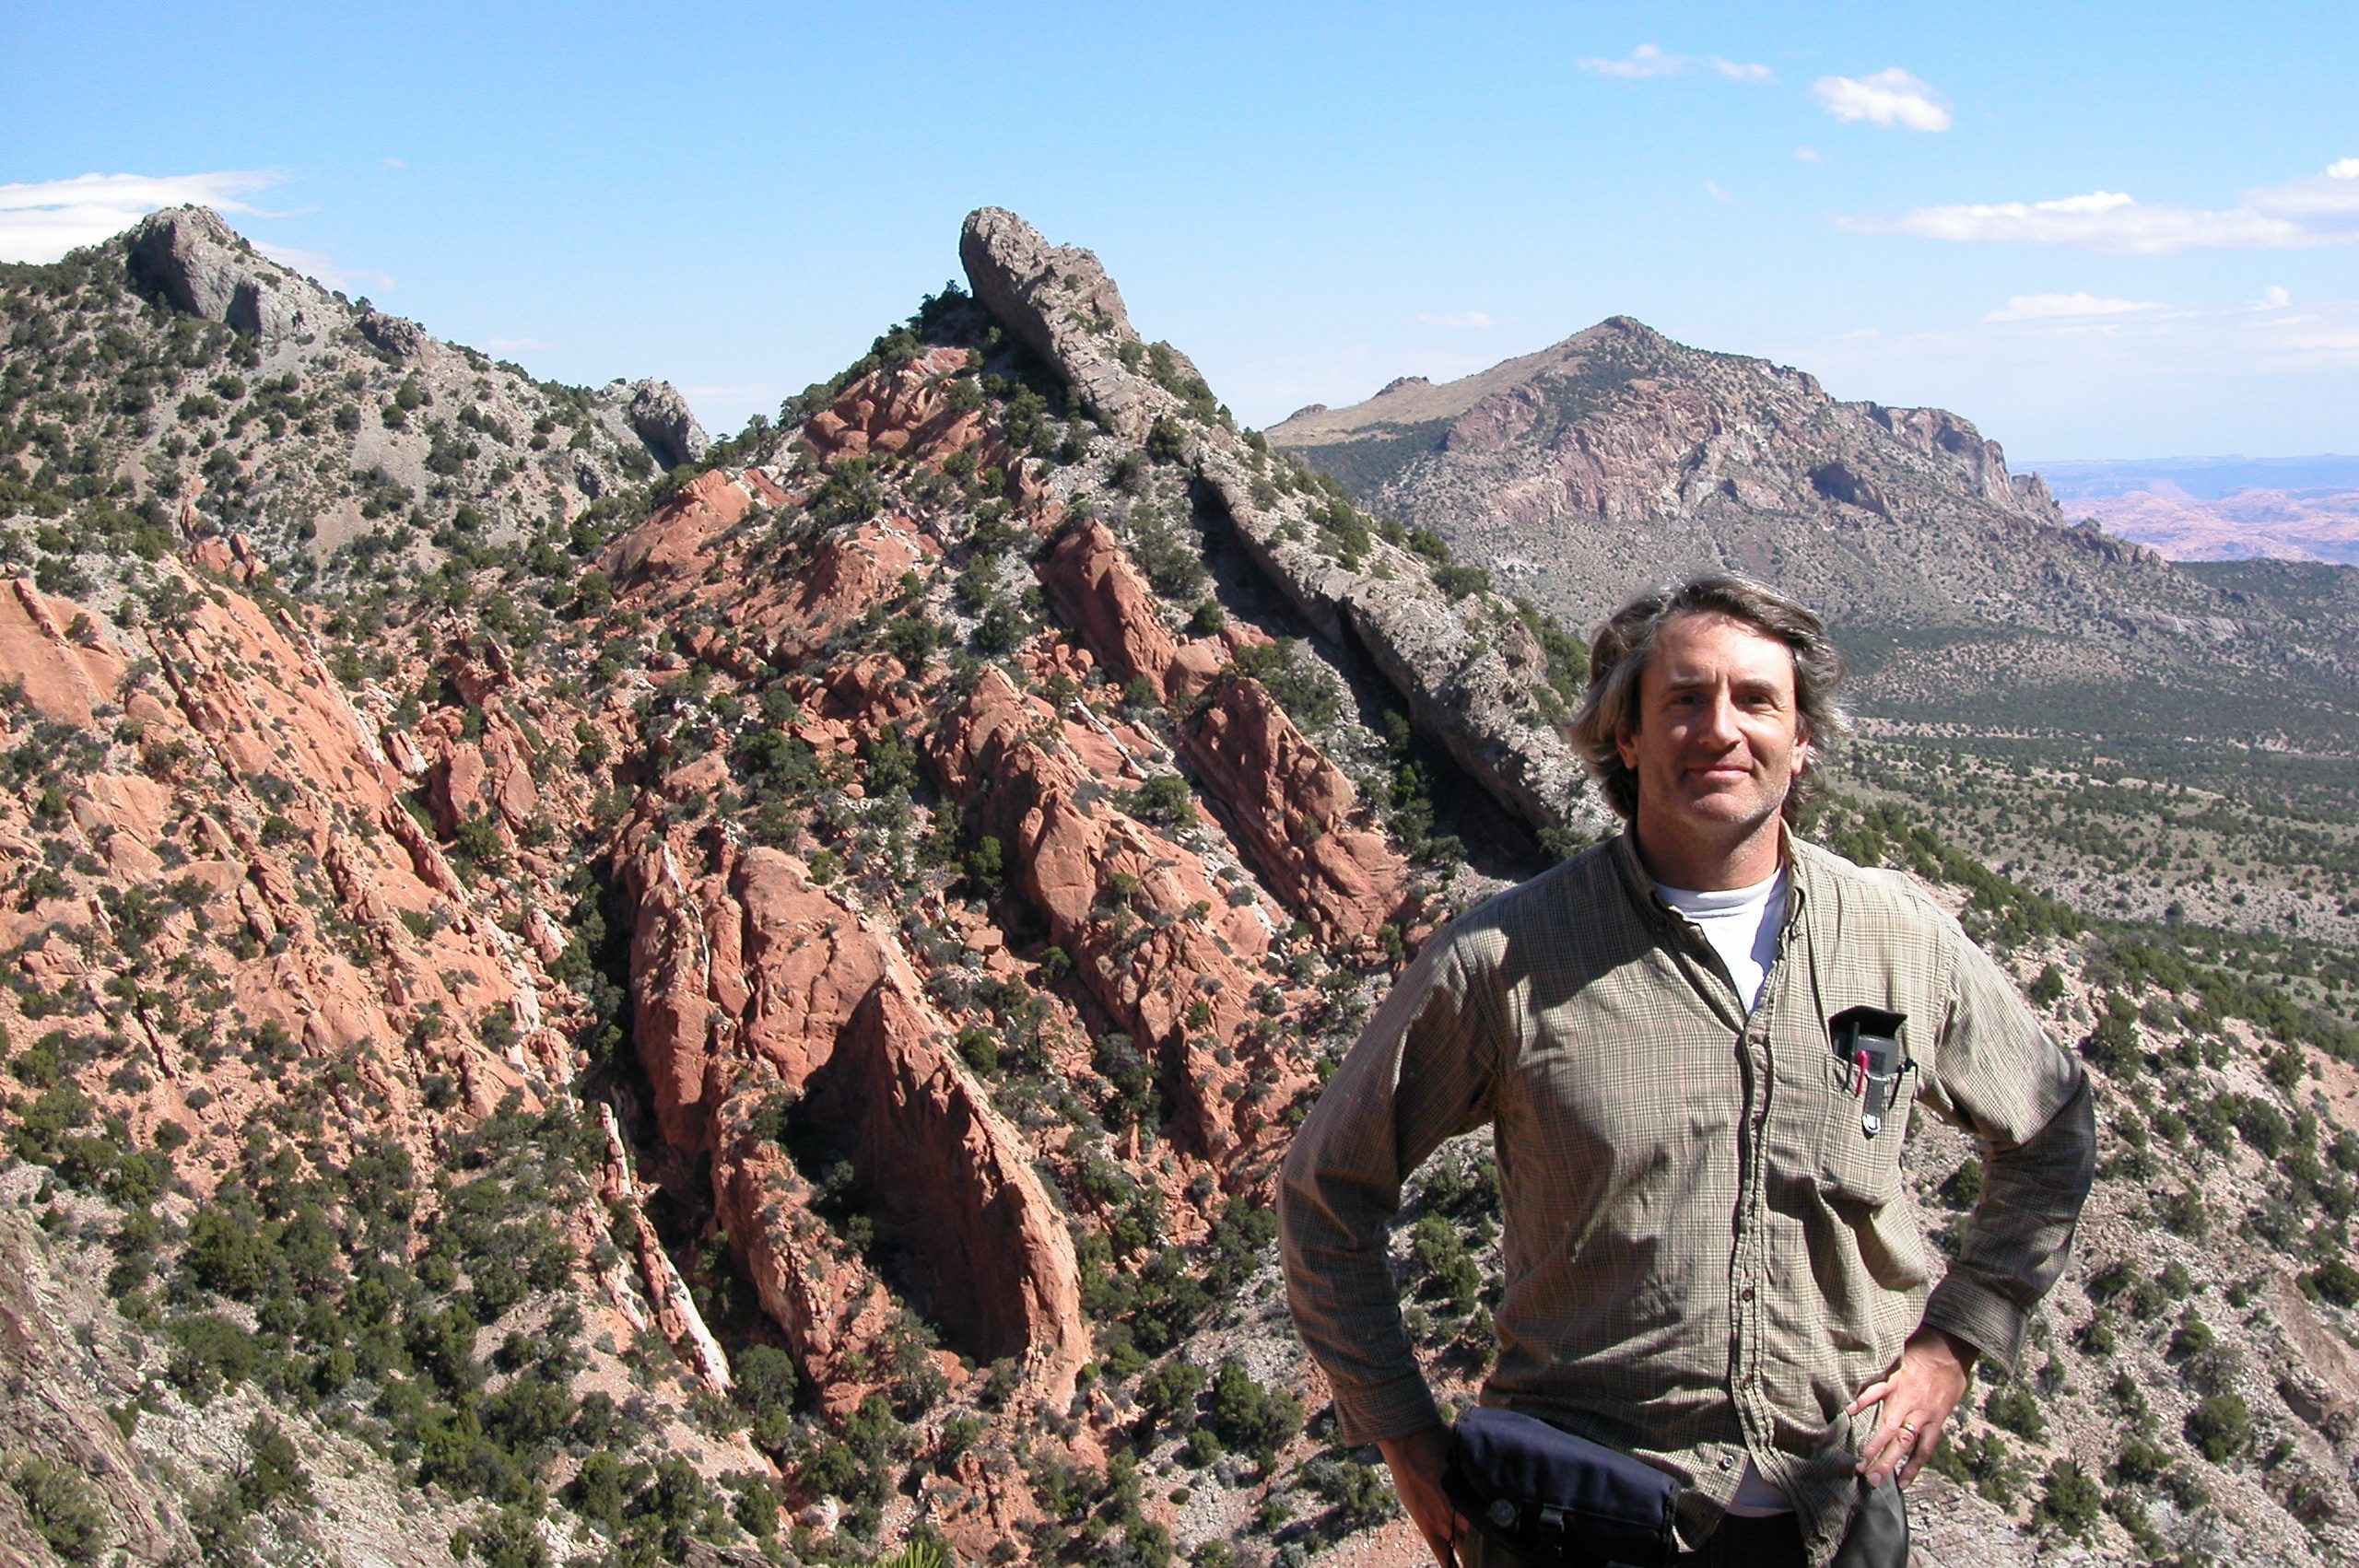 Sven Morgan in front of red rocky land.